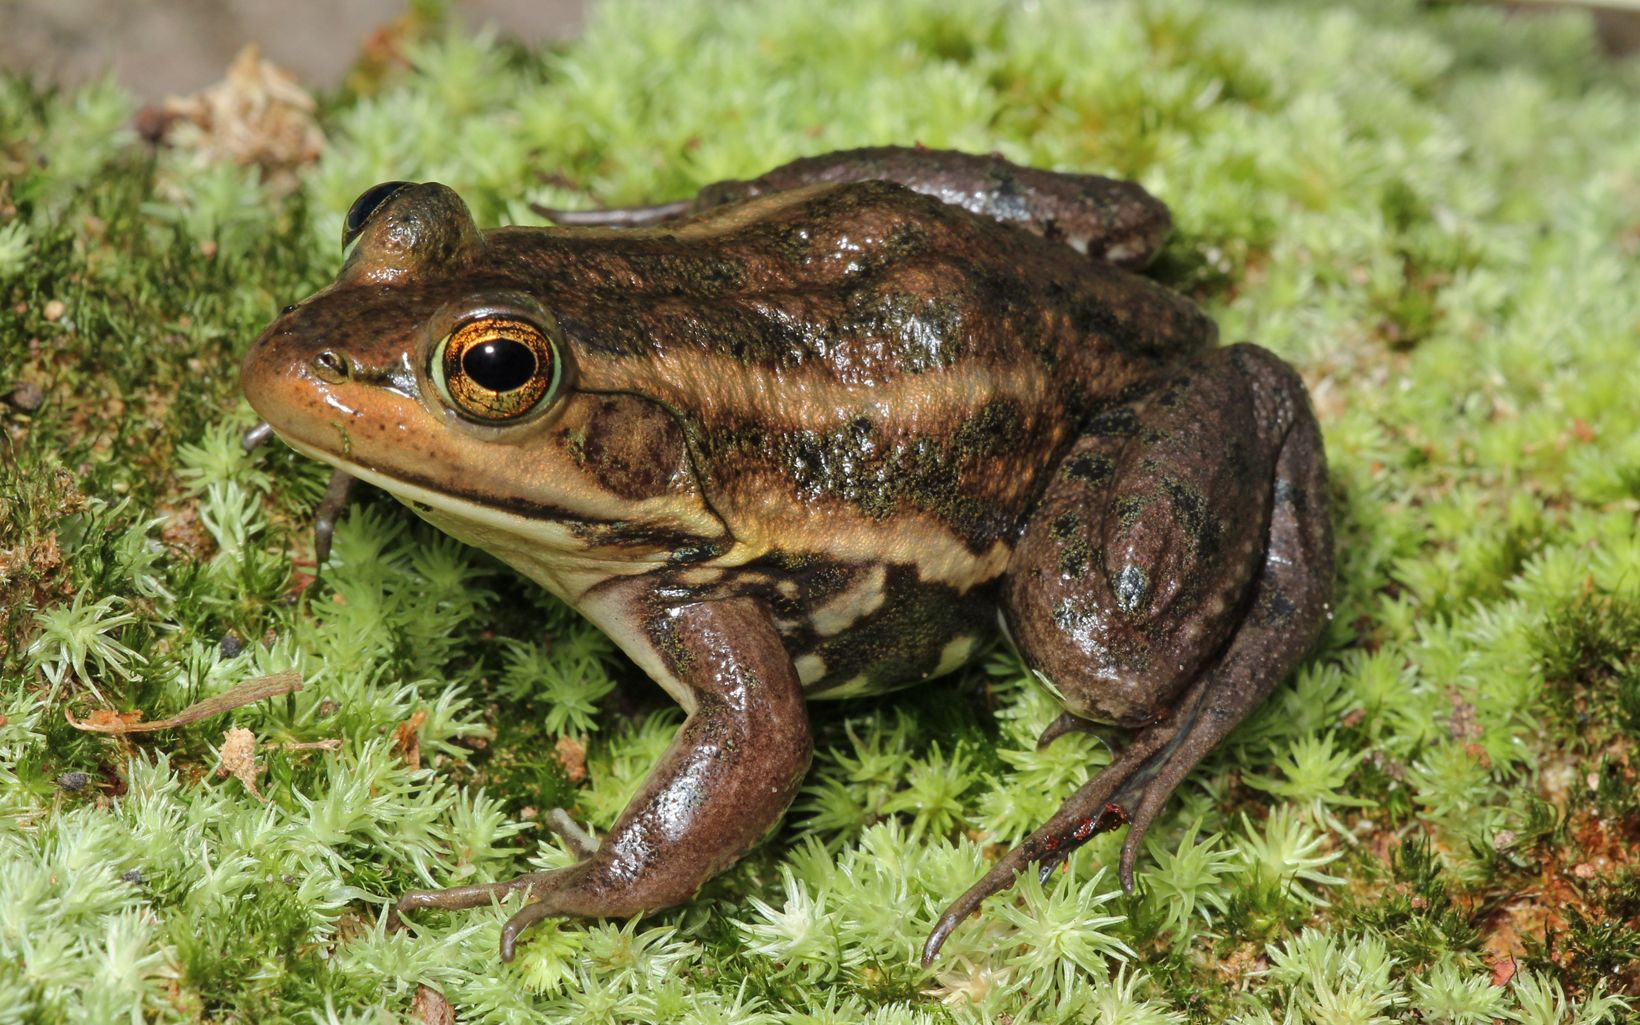 A mottled brown frog sitting on moss.